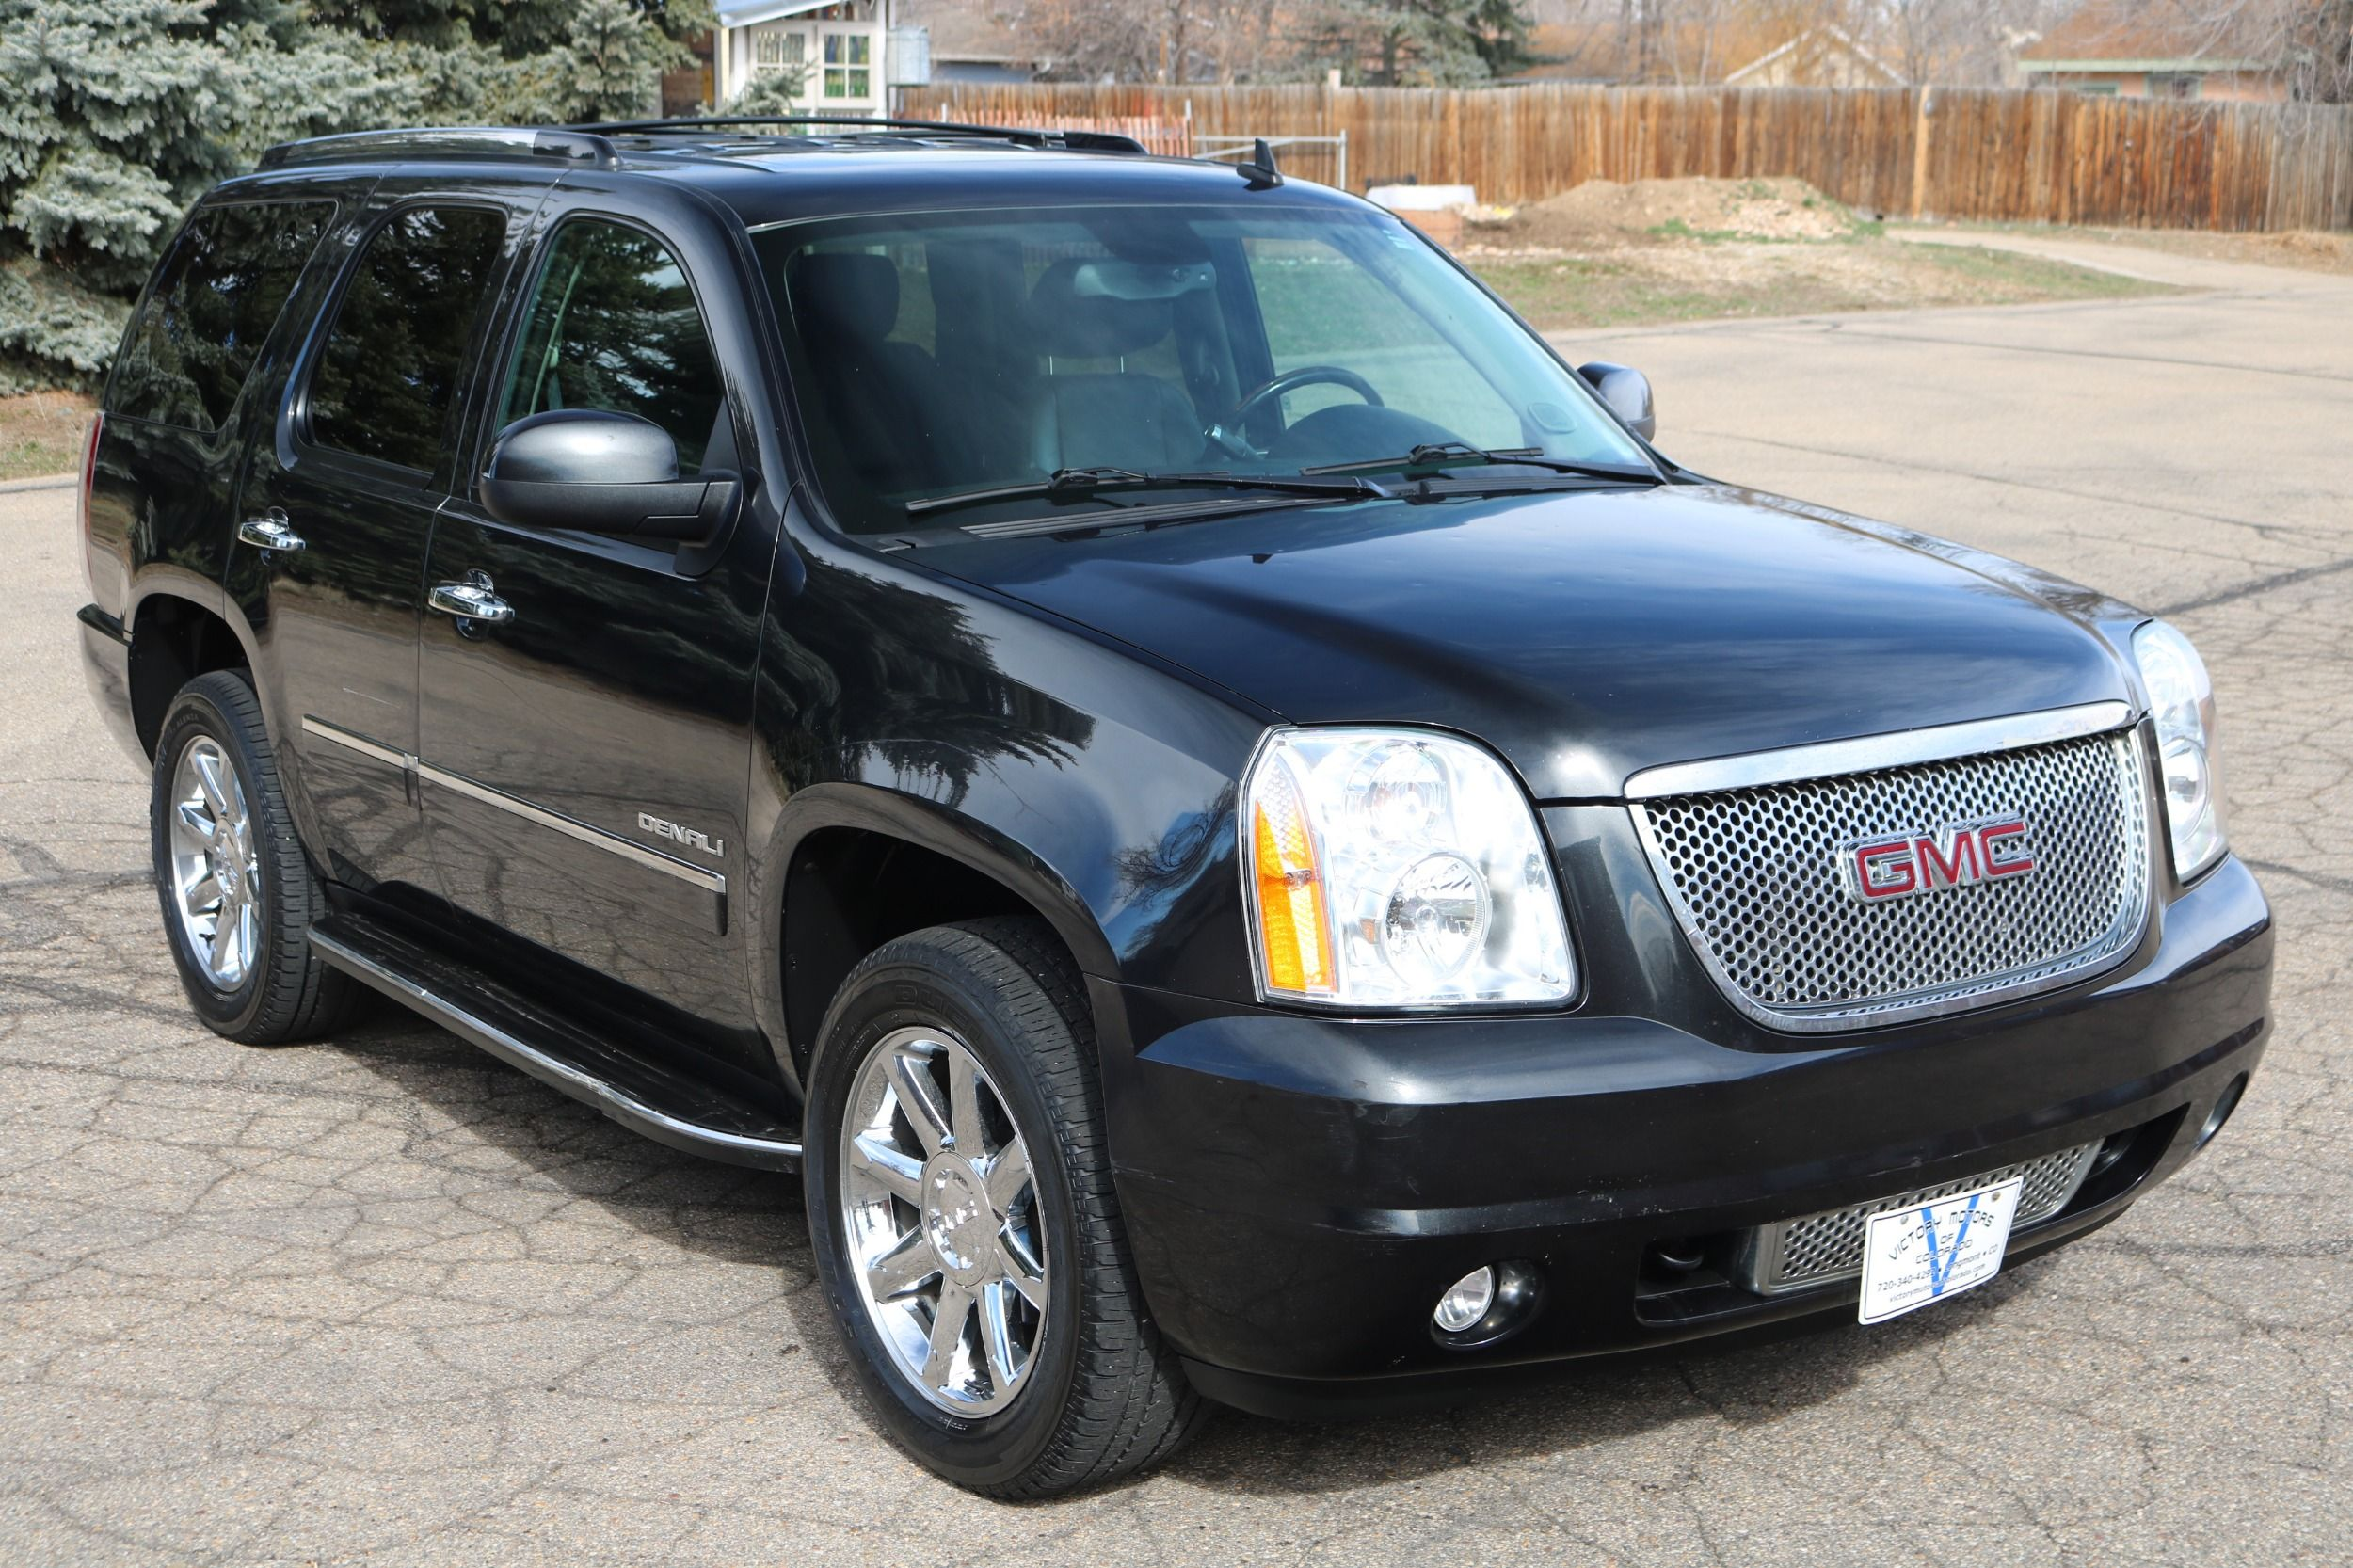 autosavant yukon level package highest sierra lineup awd there no equivalent in trim at gmc chevrolet review is and on denali launch the